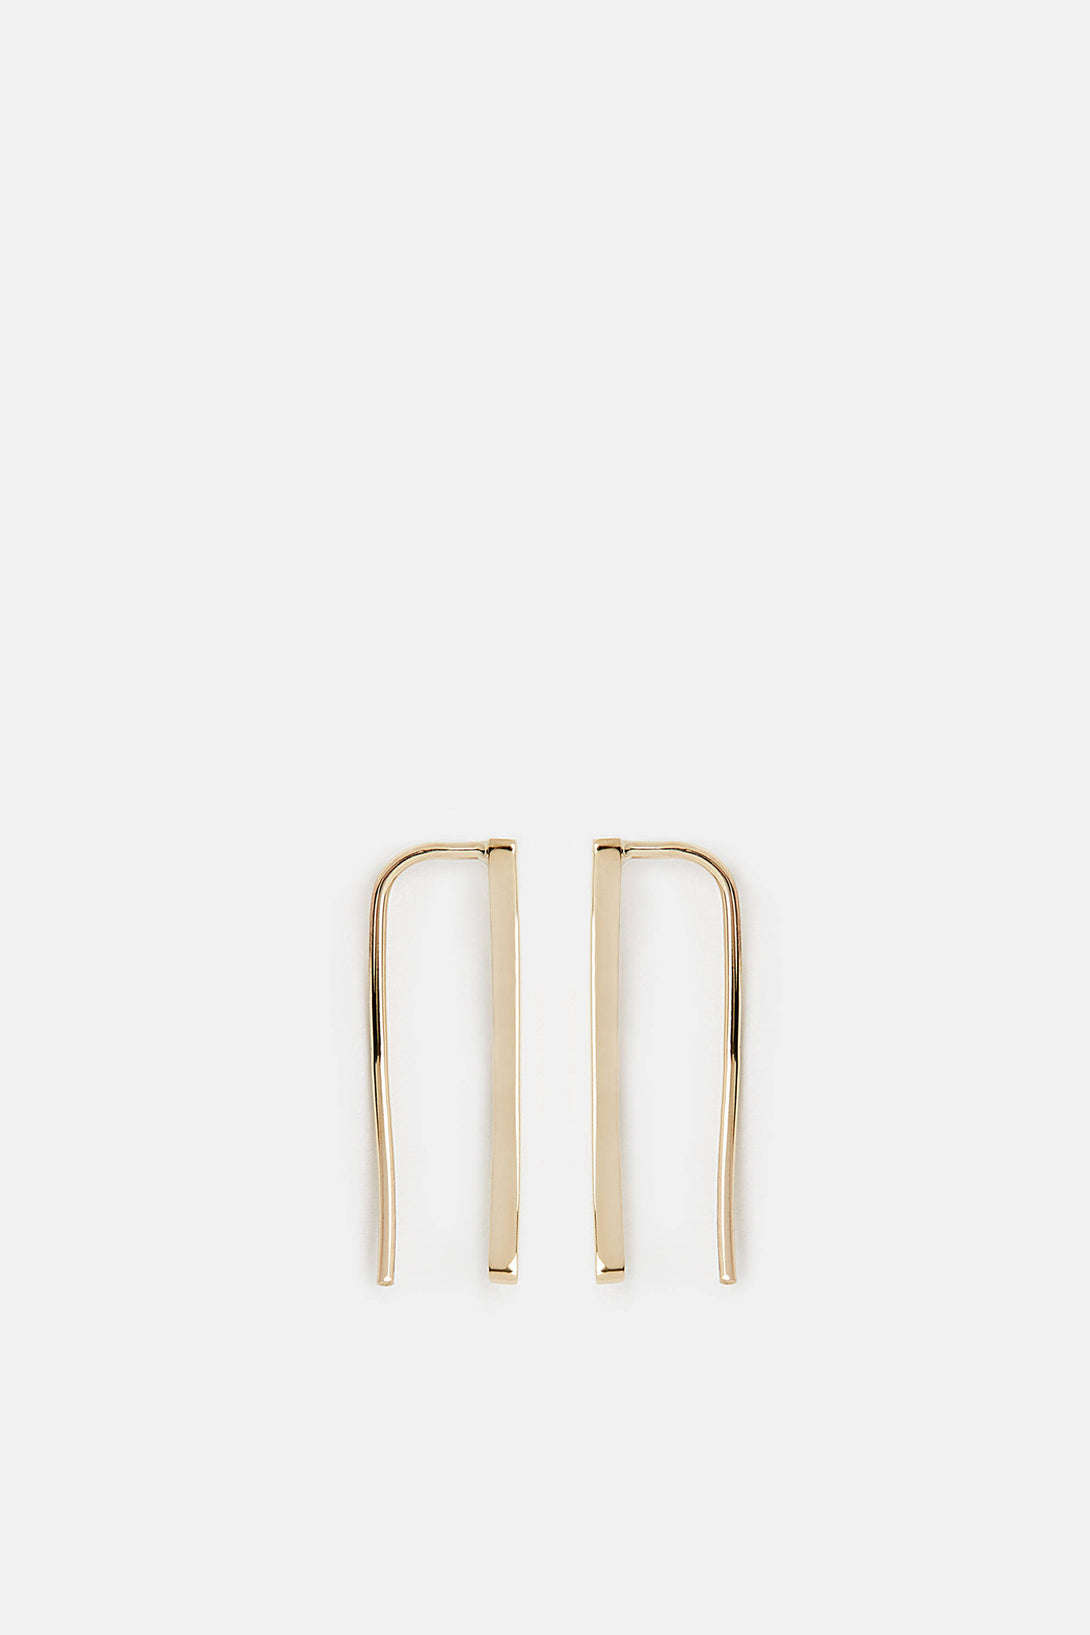 Thin Staple Earrings (Set of 2) - 14K Yellow Gold